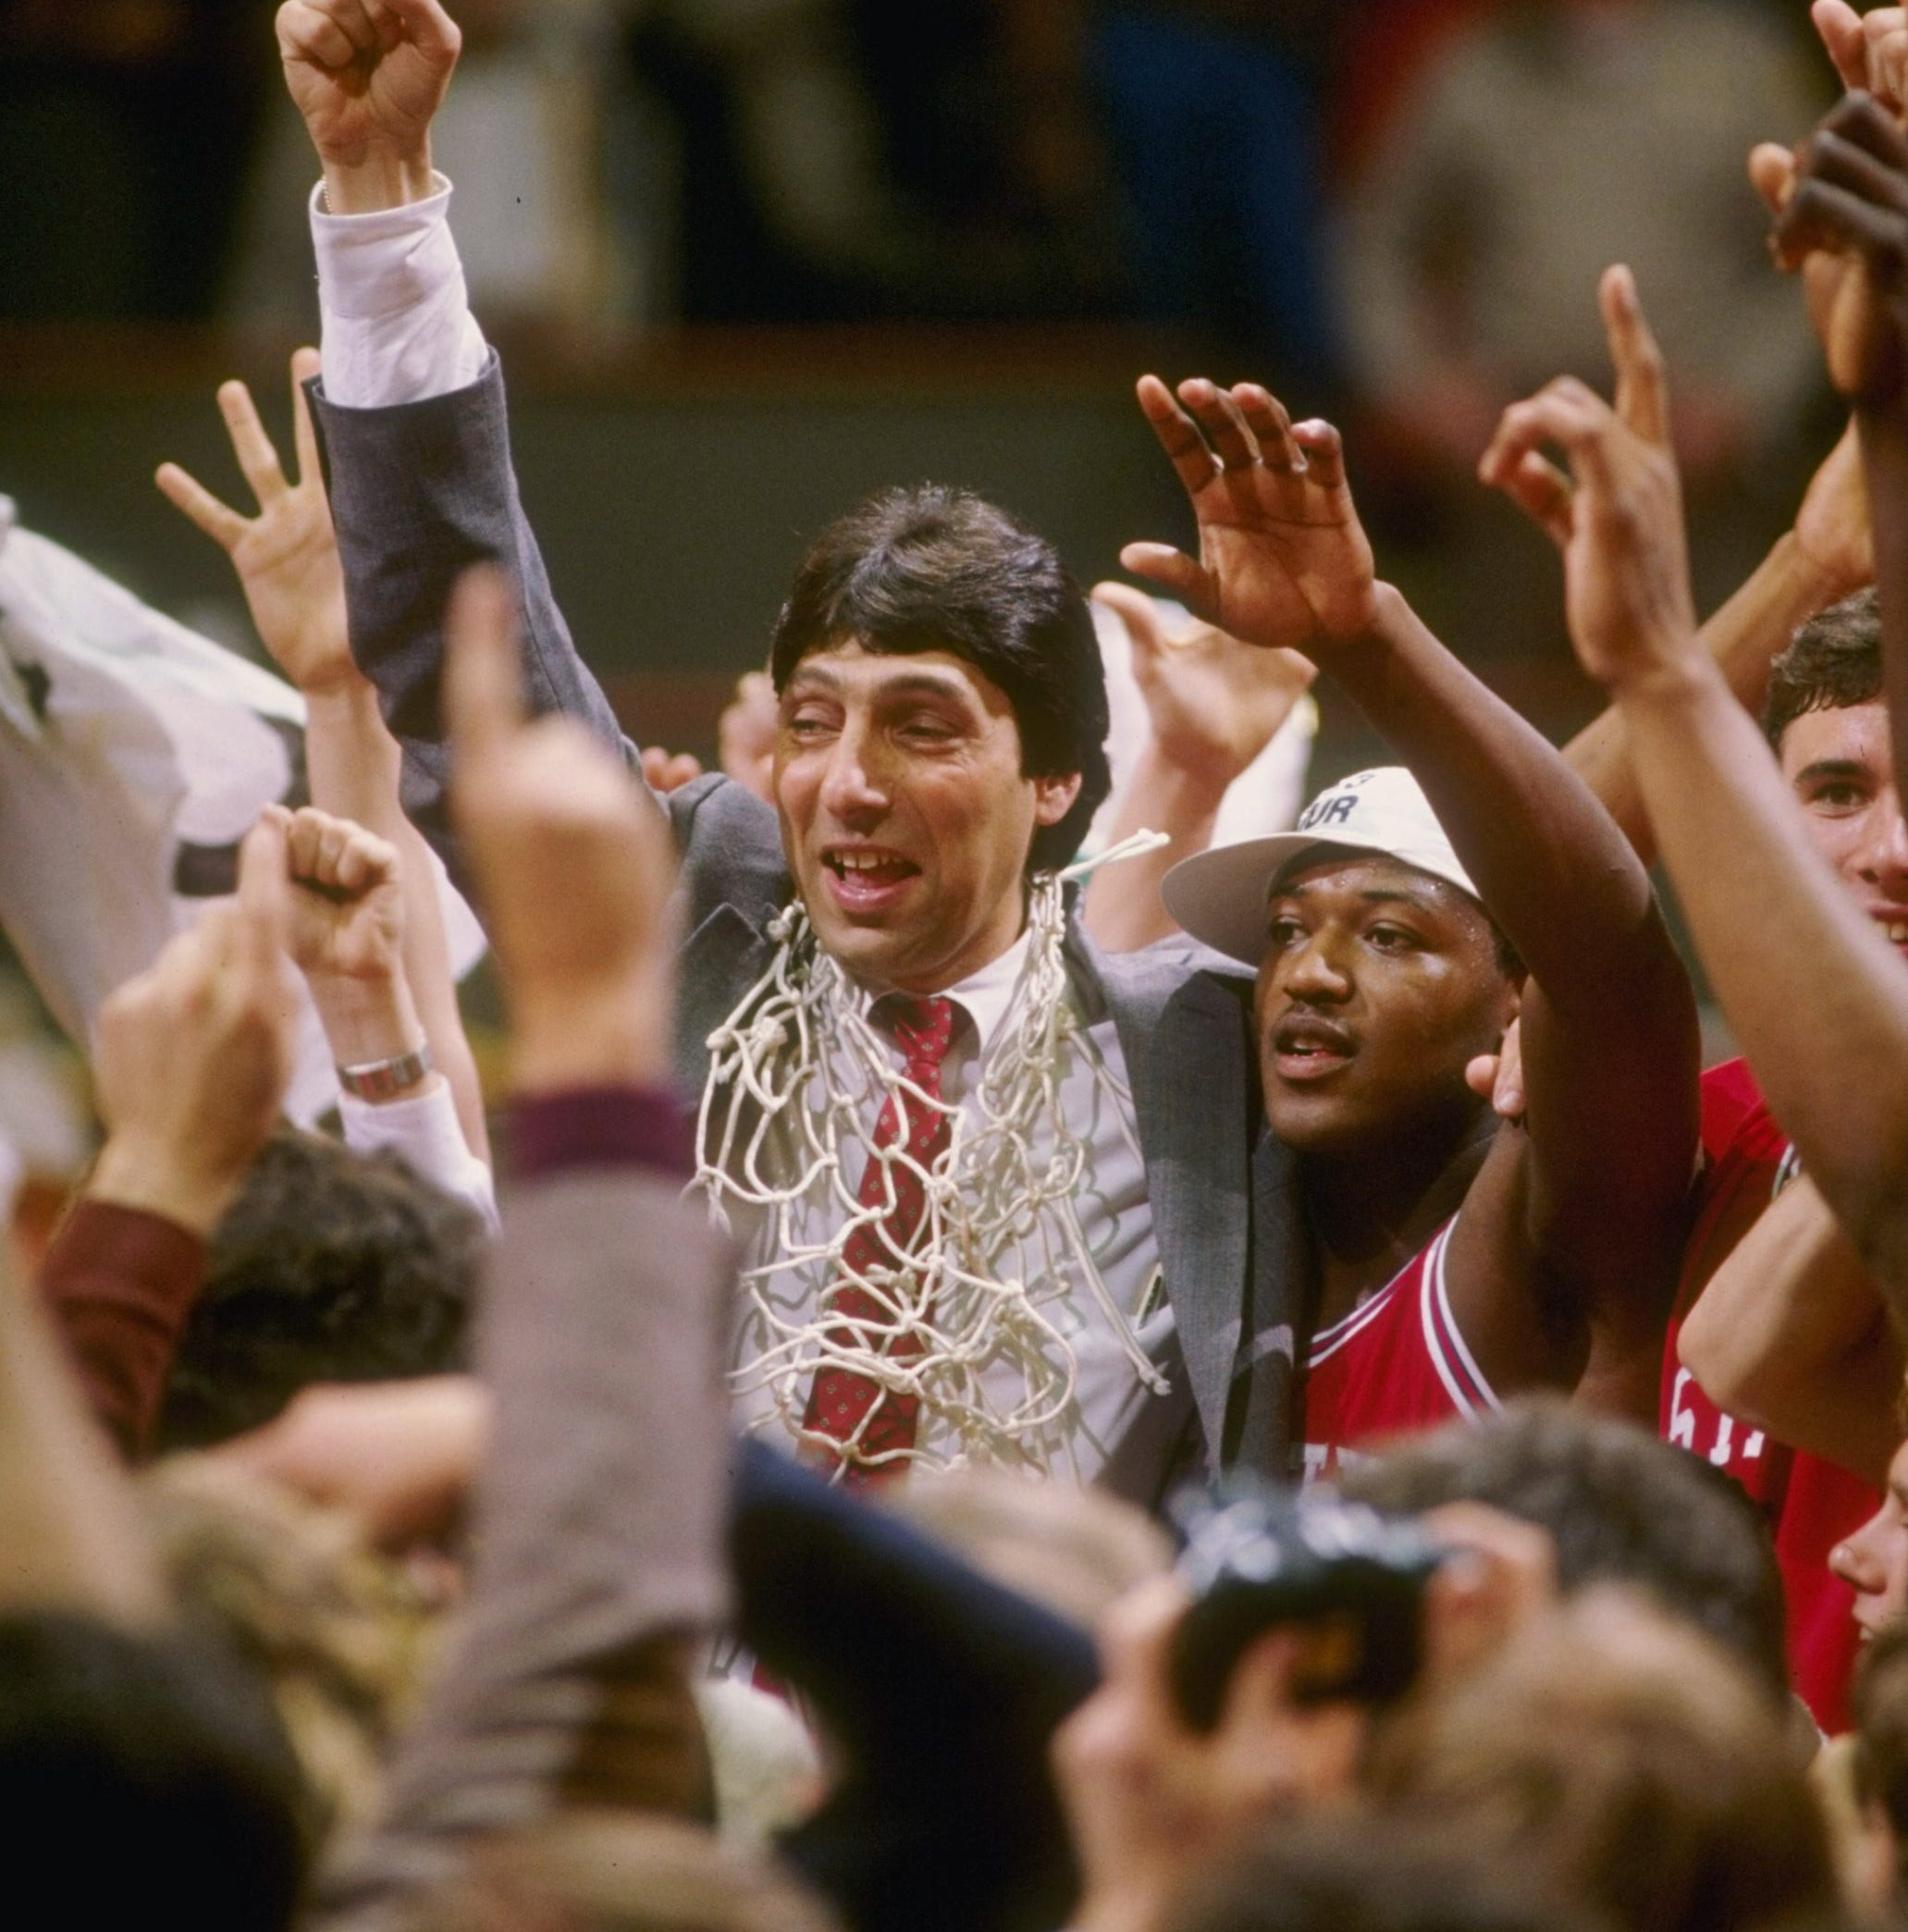 NC State adds Jim Valvano's name to storied basketball arena